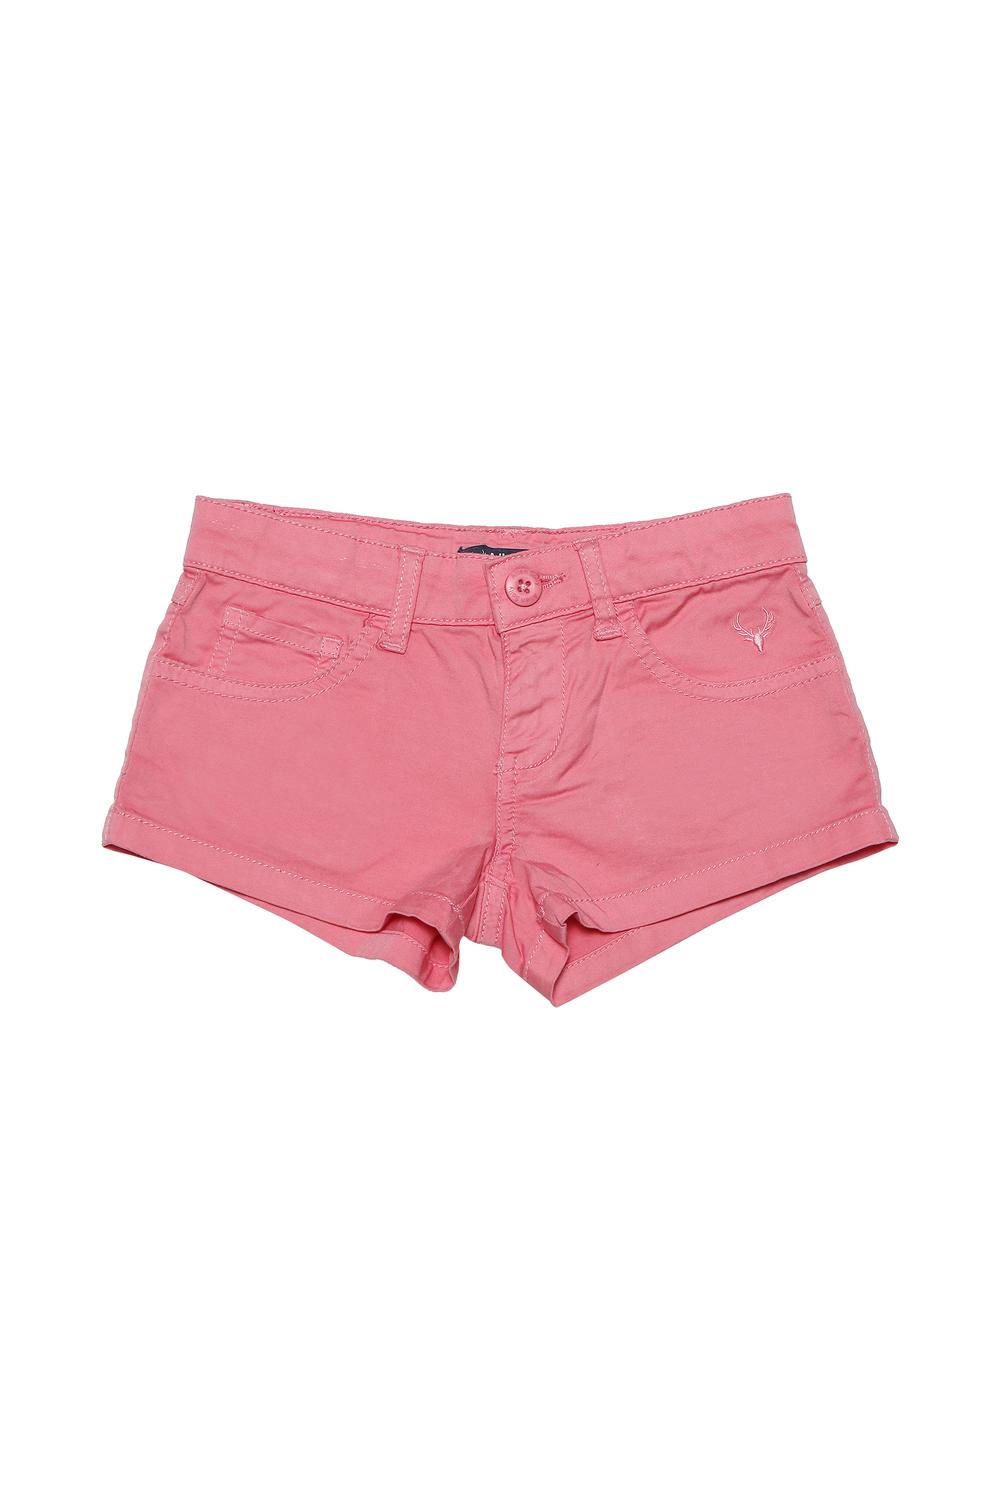 3bbcce801f Allen Solly Junior Shorts & Capris, Allen Solly Pink Shorts for Girls at  Allensolly.com